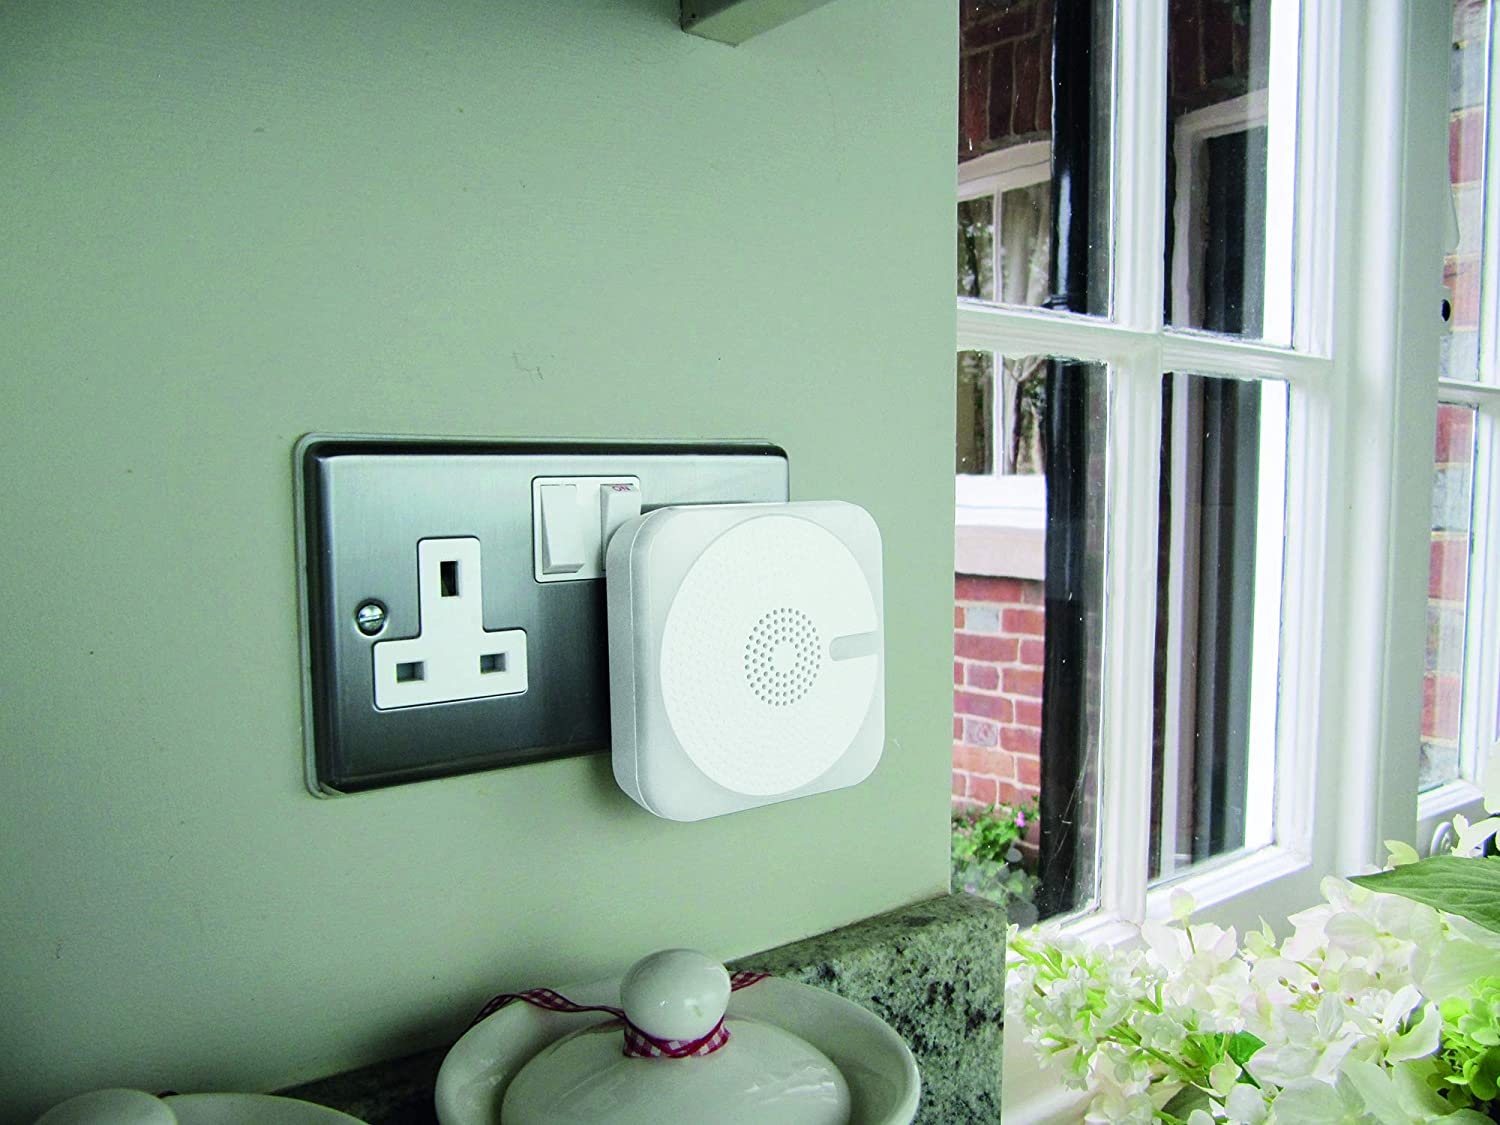 Plug-in Door Chime with Kinetic Bell Push - White Model: 66408